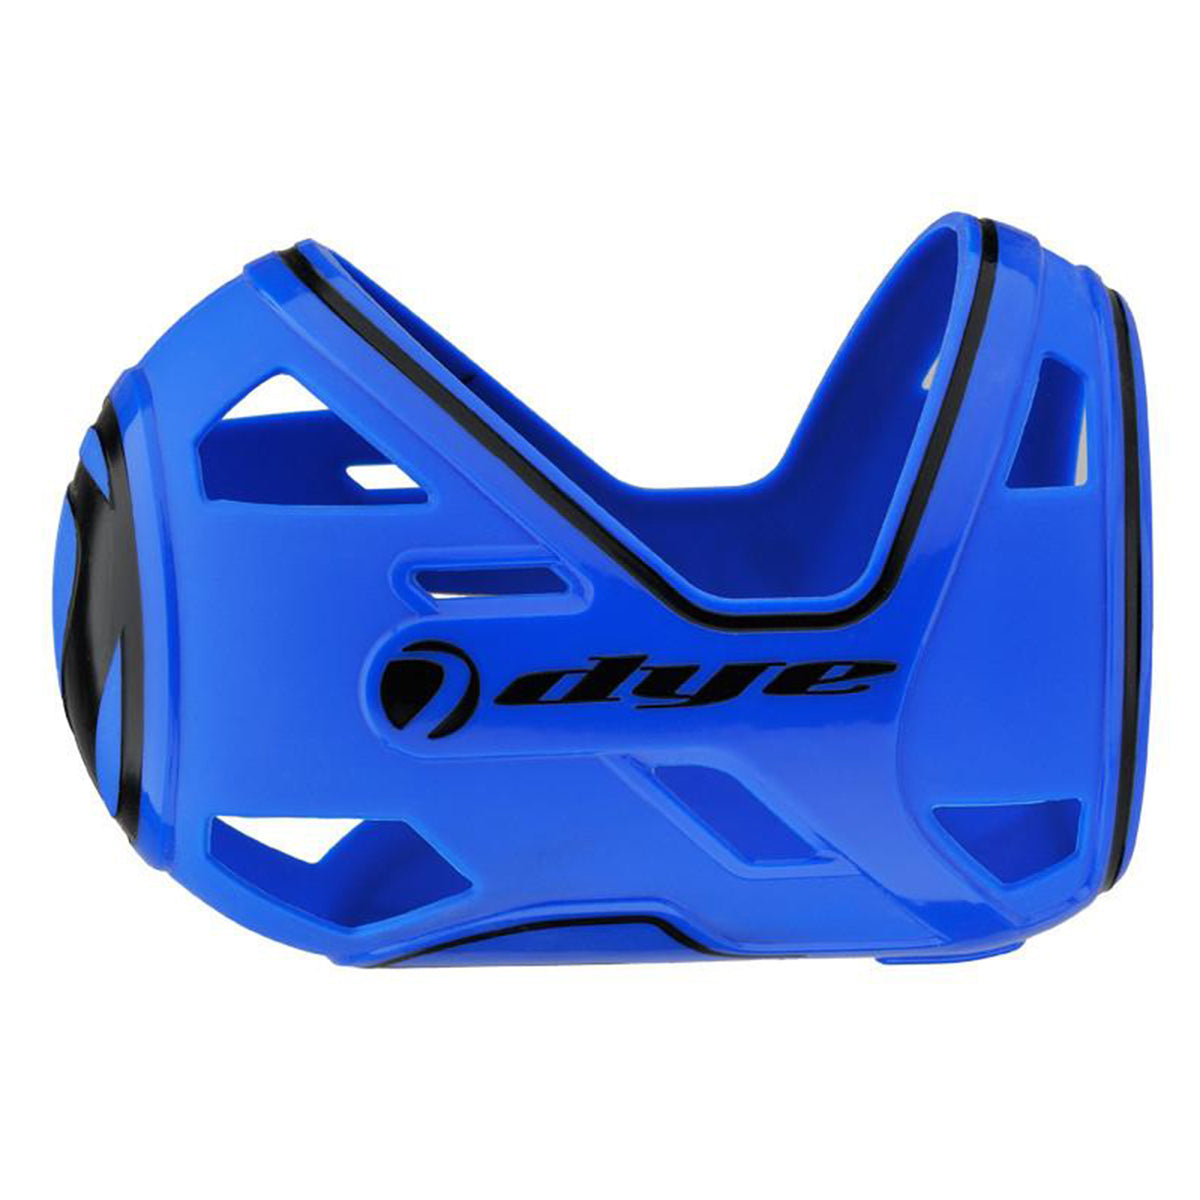 Dye Flex Paintball Tank Cover - Blue